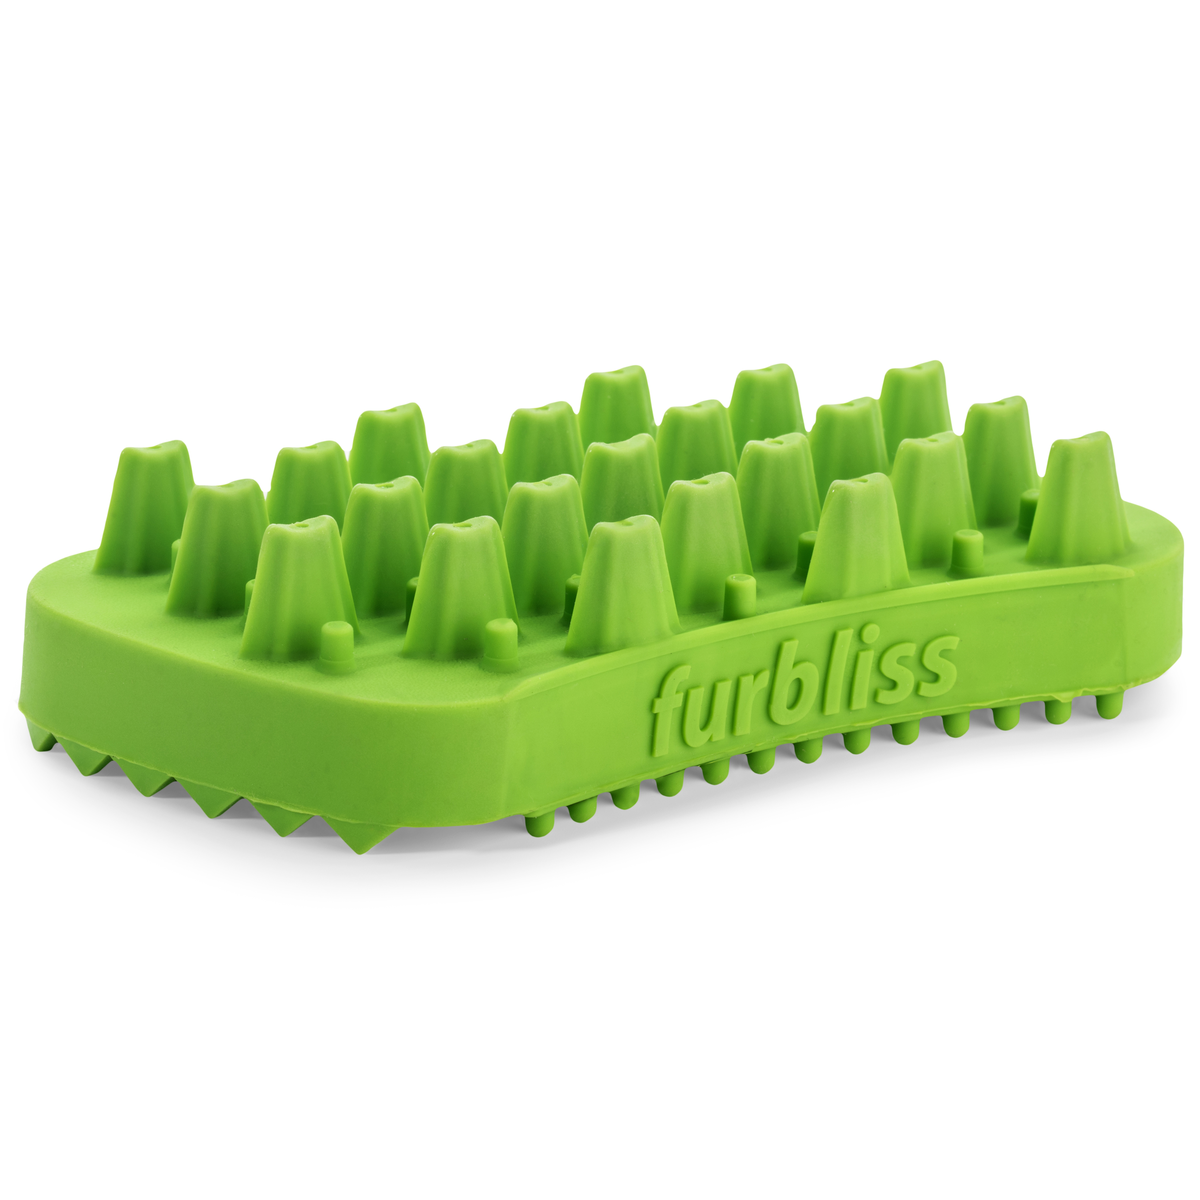 Furbliss Dog Brush for Grooming Dogs & Cats with Long Hair - Brushes, Massages, Great for the Bath